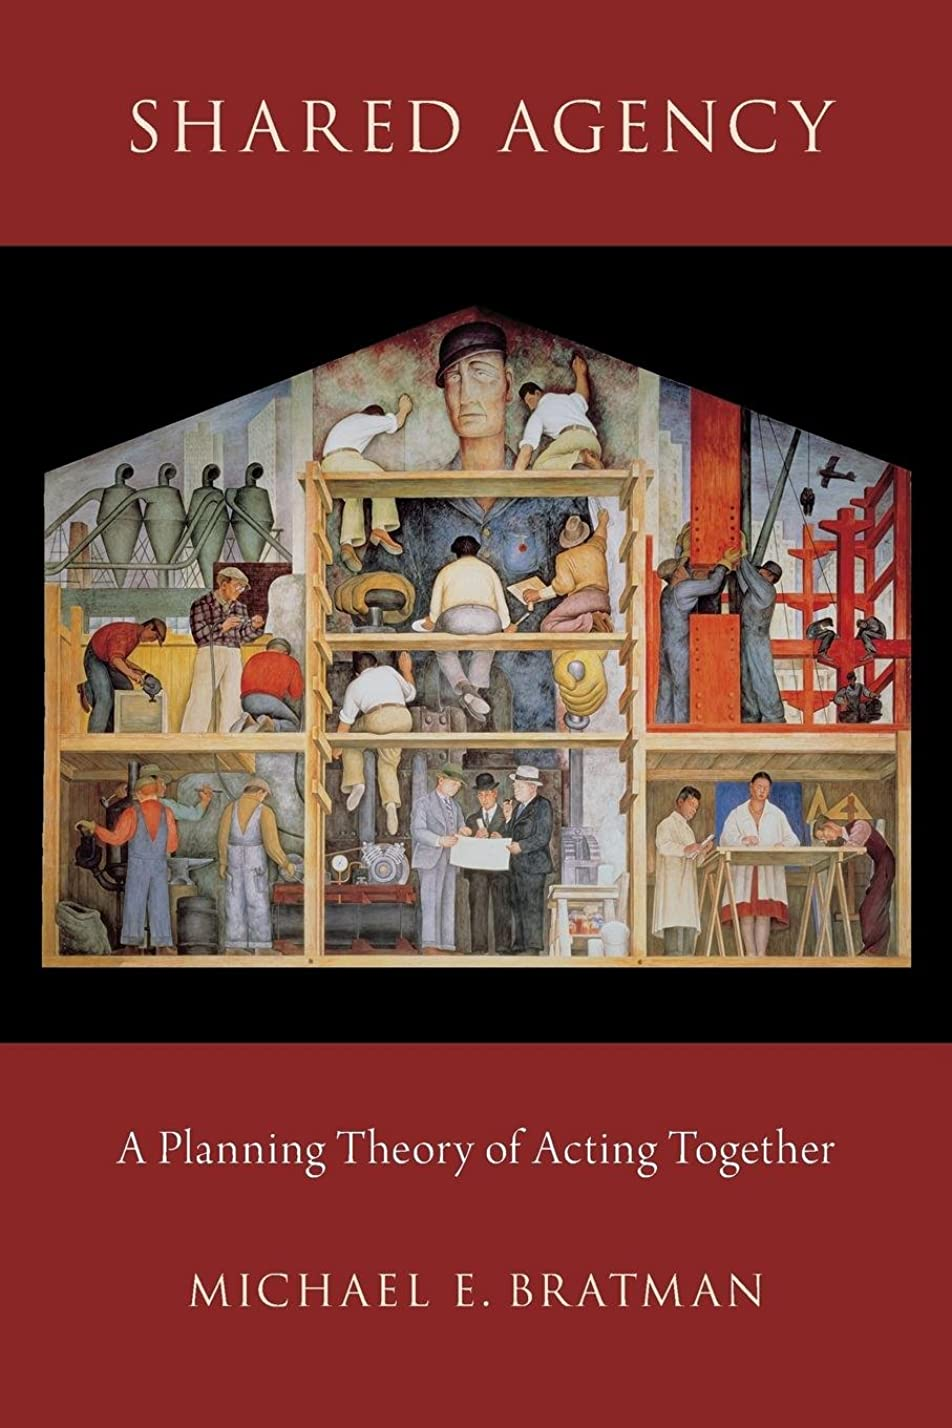 アベニュー夜明けに砂Shared Agency: A Planning Theory of Acting Together